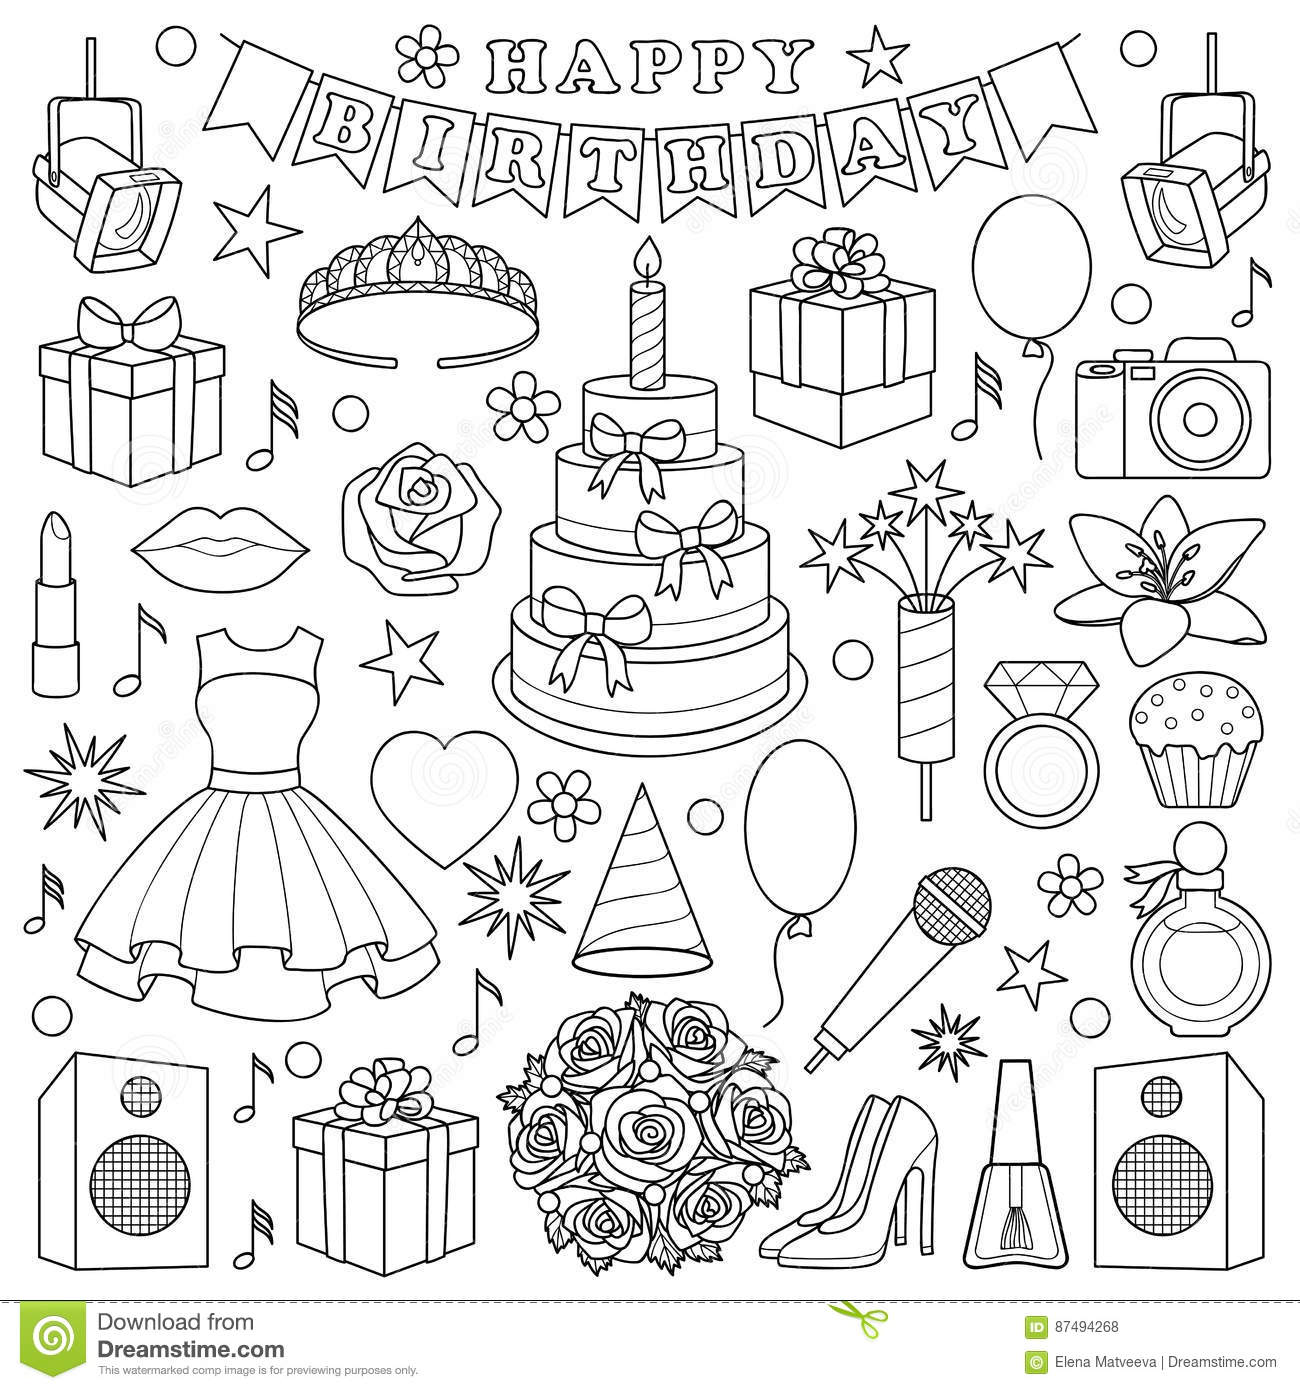 sweet 16 birthday coloring pages - photo#26